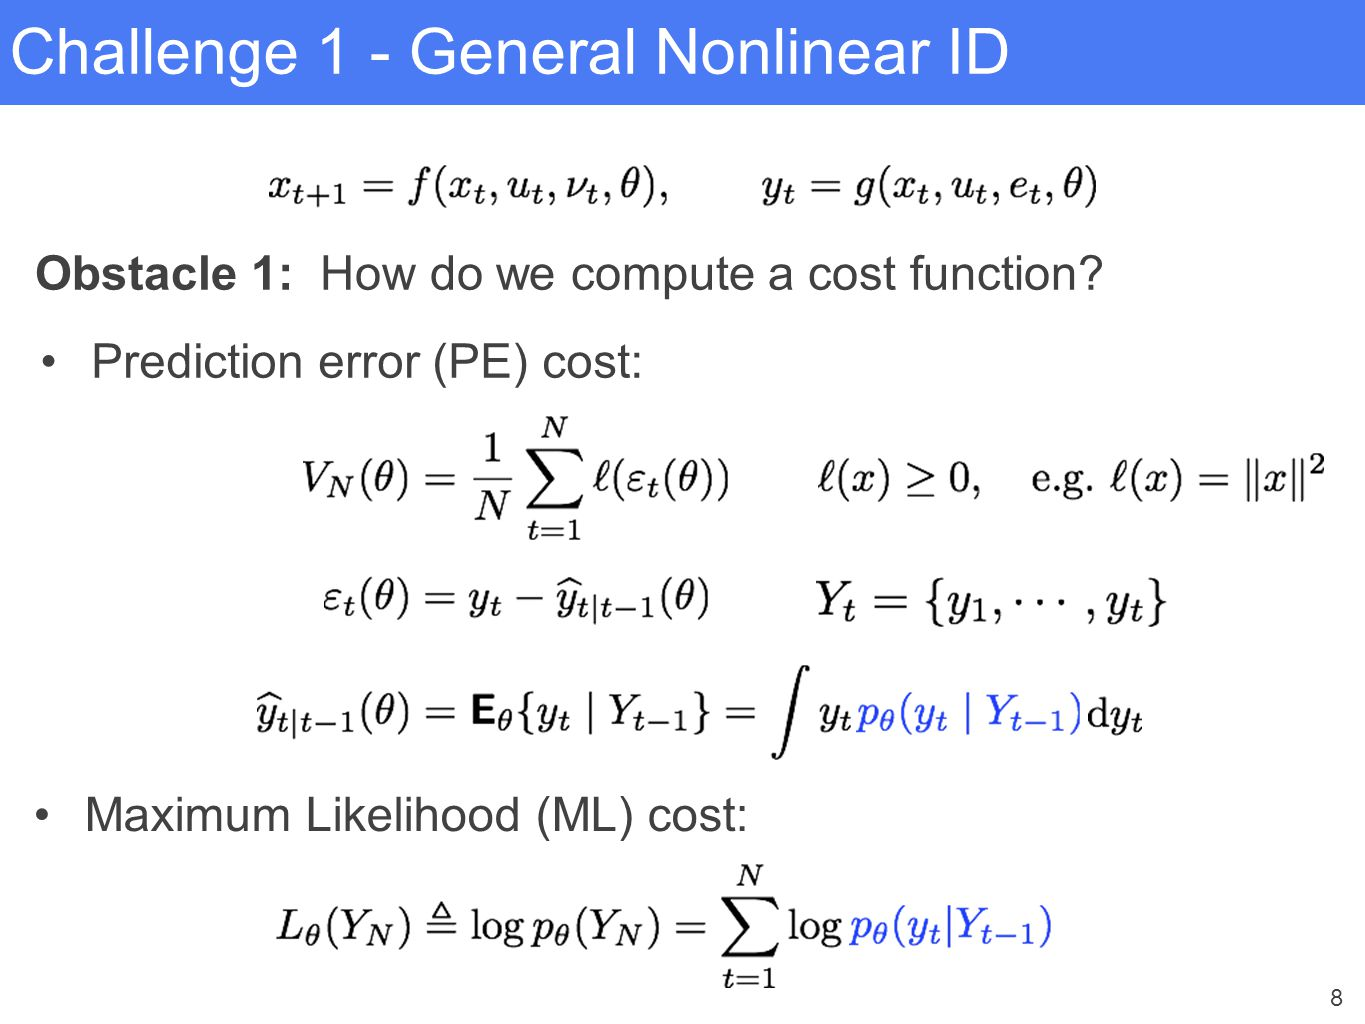 8 Challenge 1 - General Nonlinear ID Obstacle 1: How do we compute a cost function? Prediction error (PE) cost: Maximum Likelihood (ML) cost: